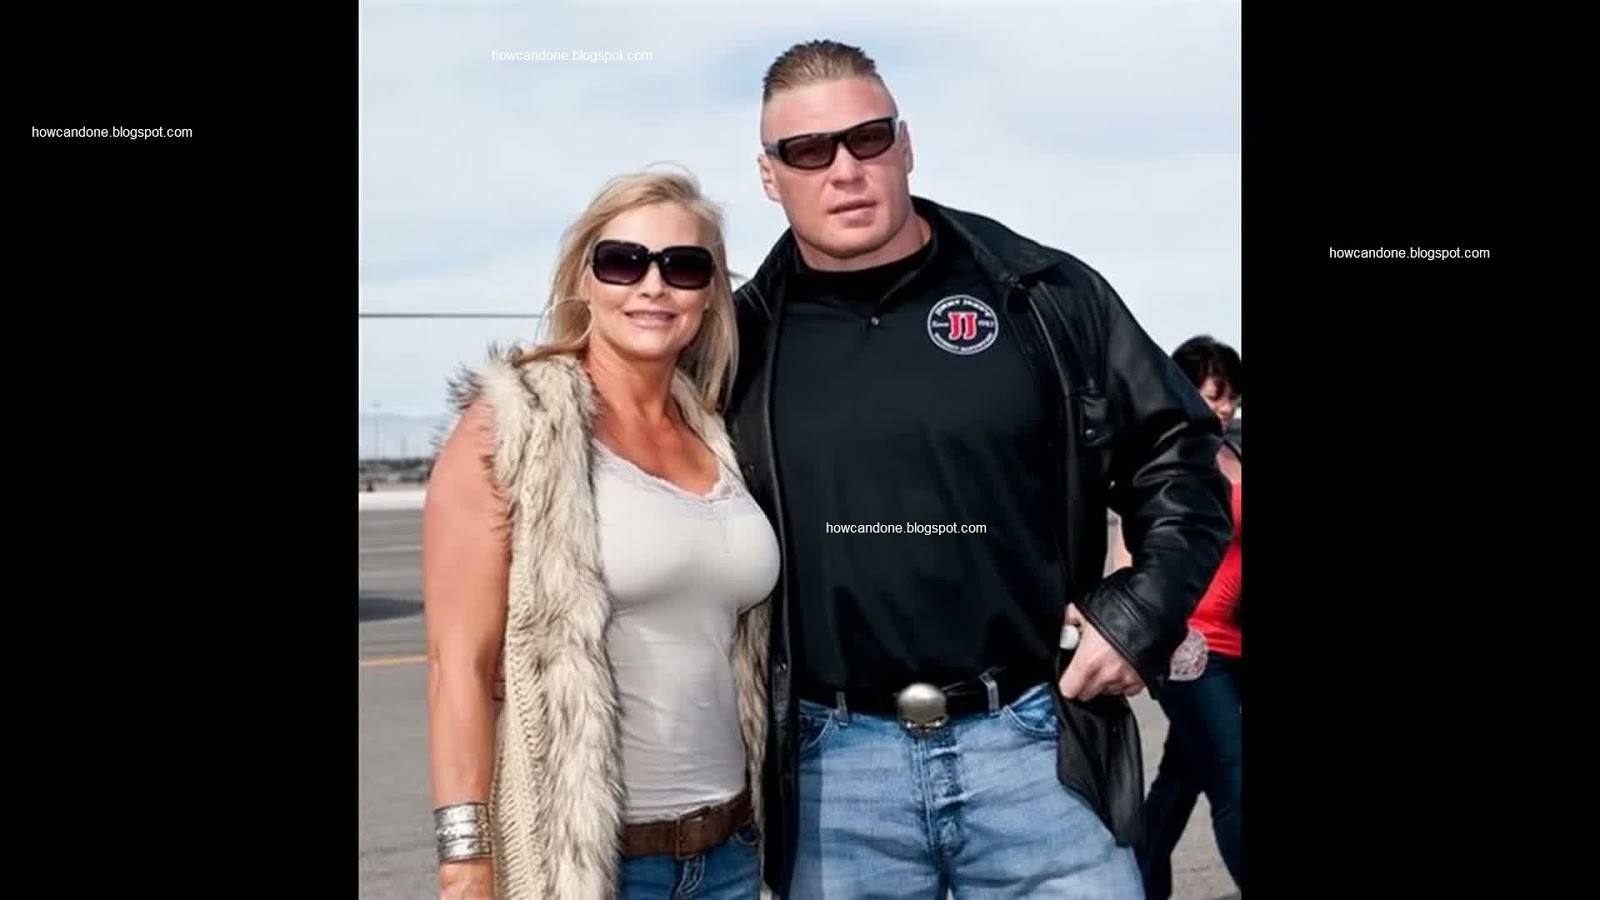 Photo Editing With Wwe Superstars Wife How Can Done